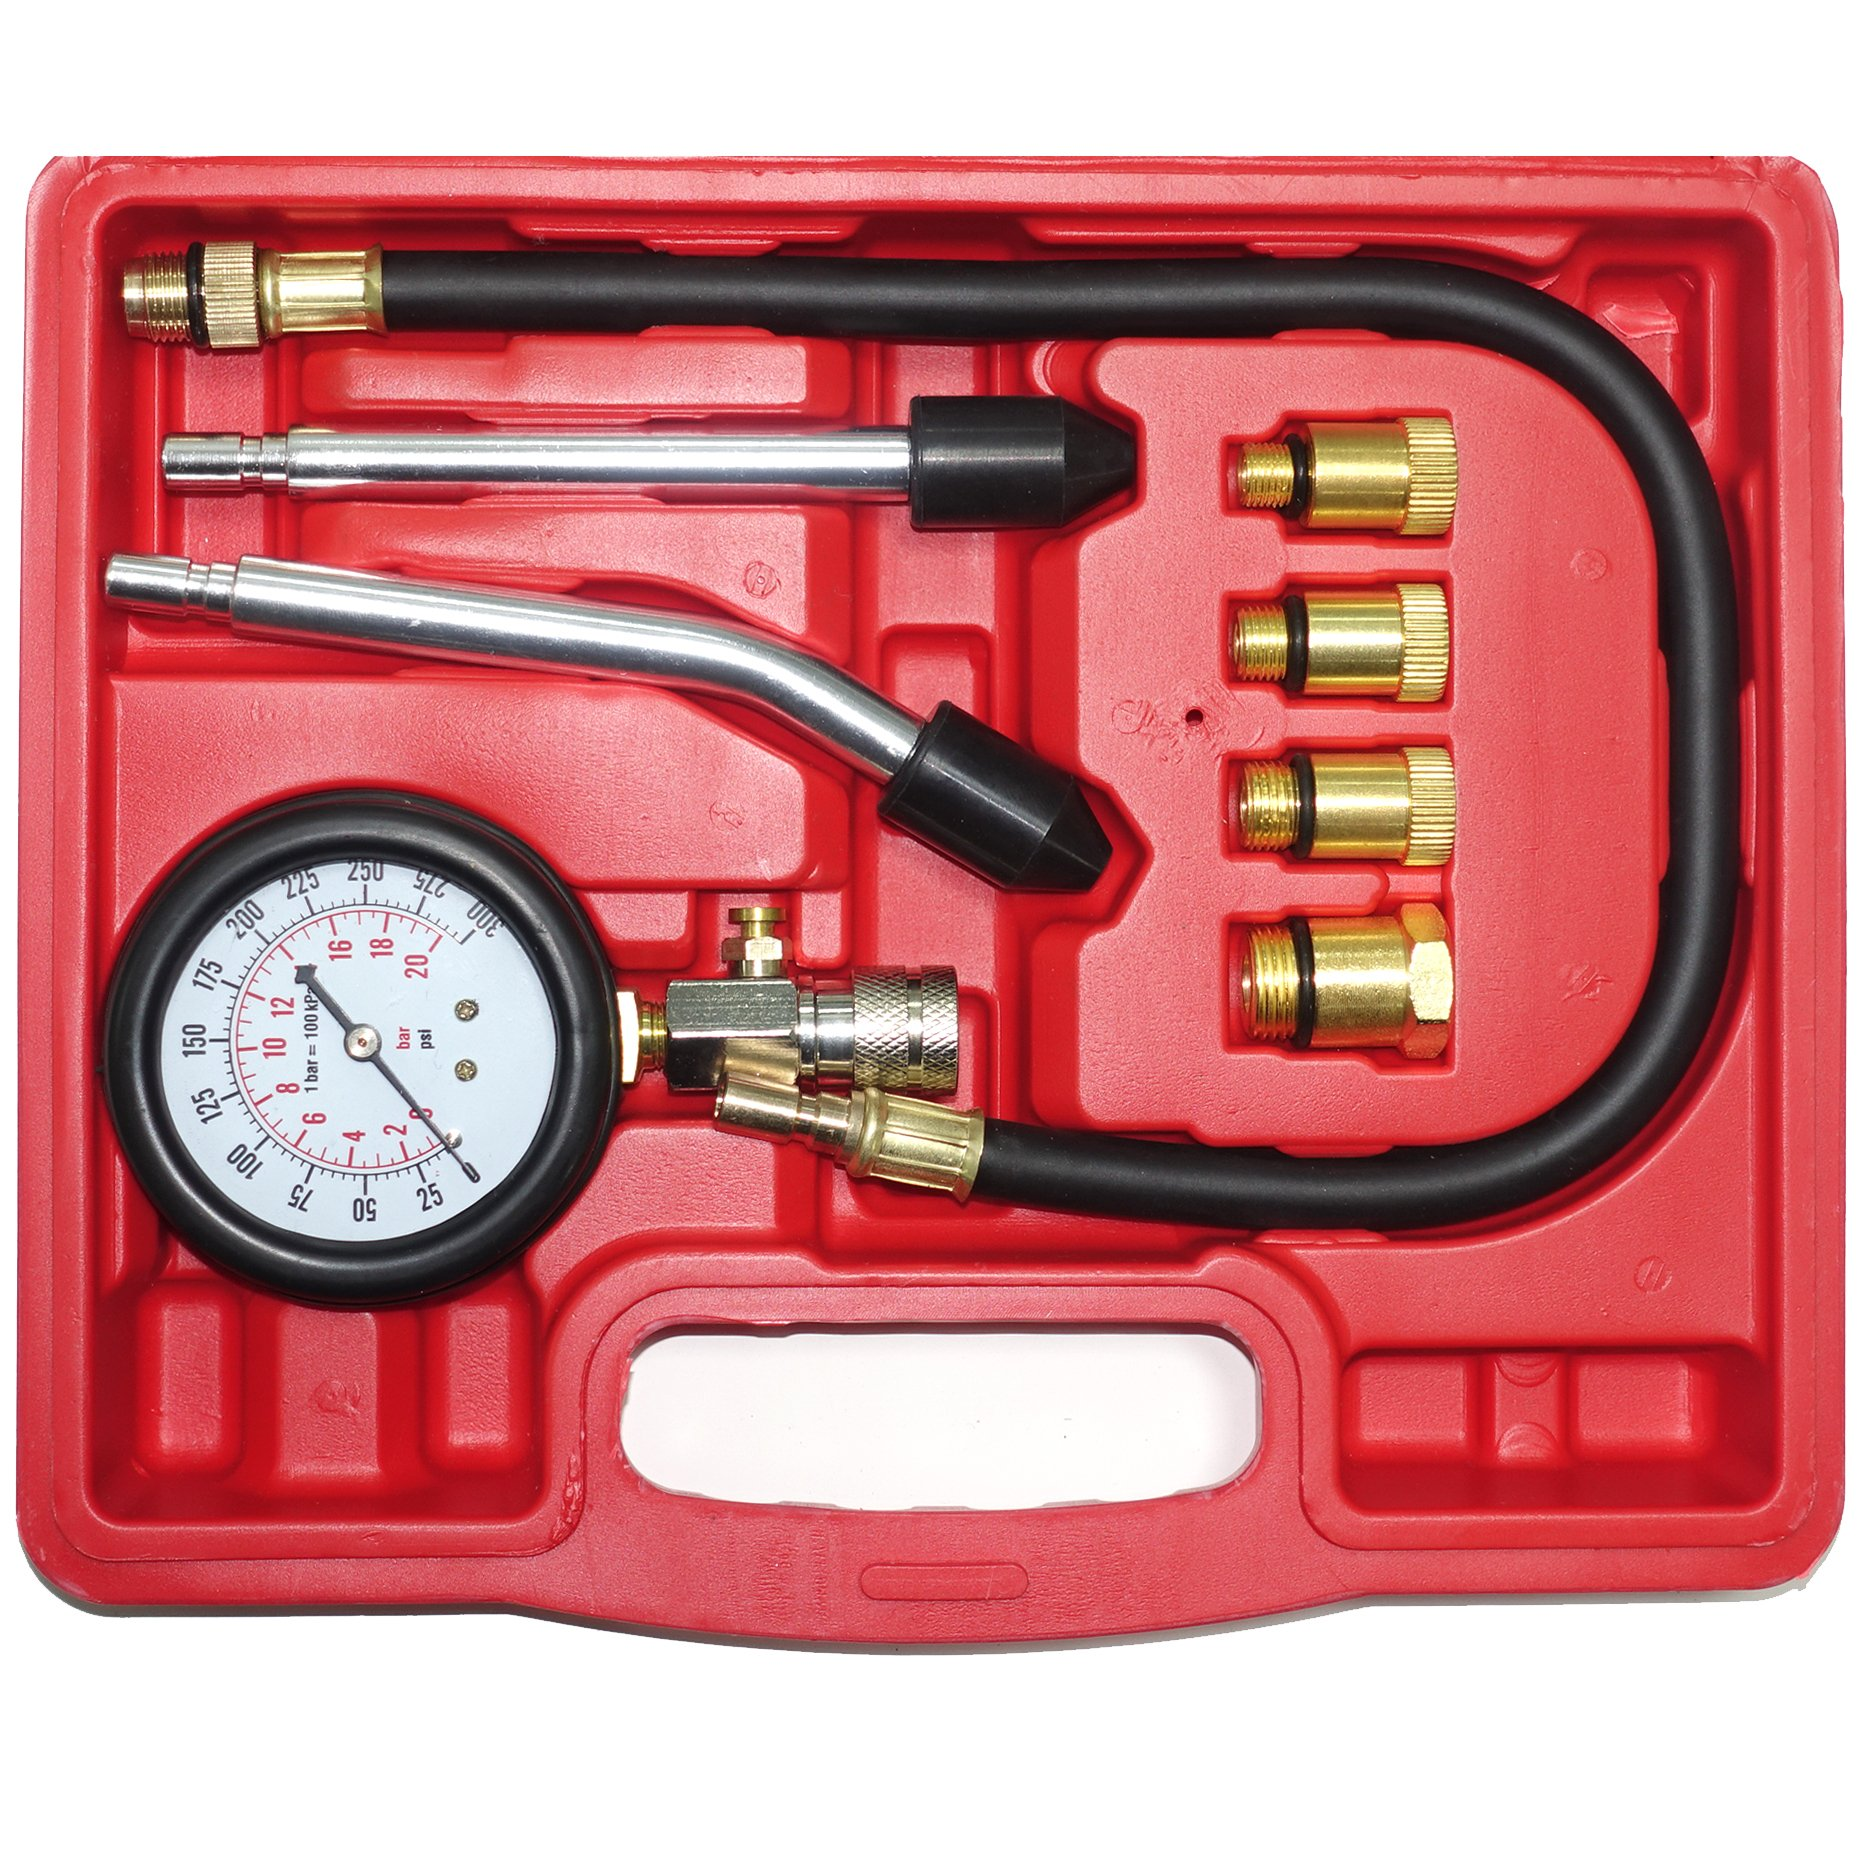 GTM 19022 Compression Test Kit M10x1.0/M12 x 1.25/M14 x 1.25 M18 x 1.5/M16 x 1.5 - Ford Triton